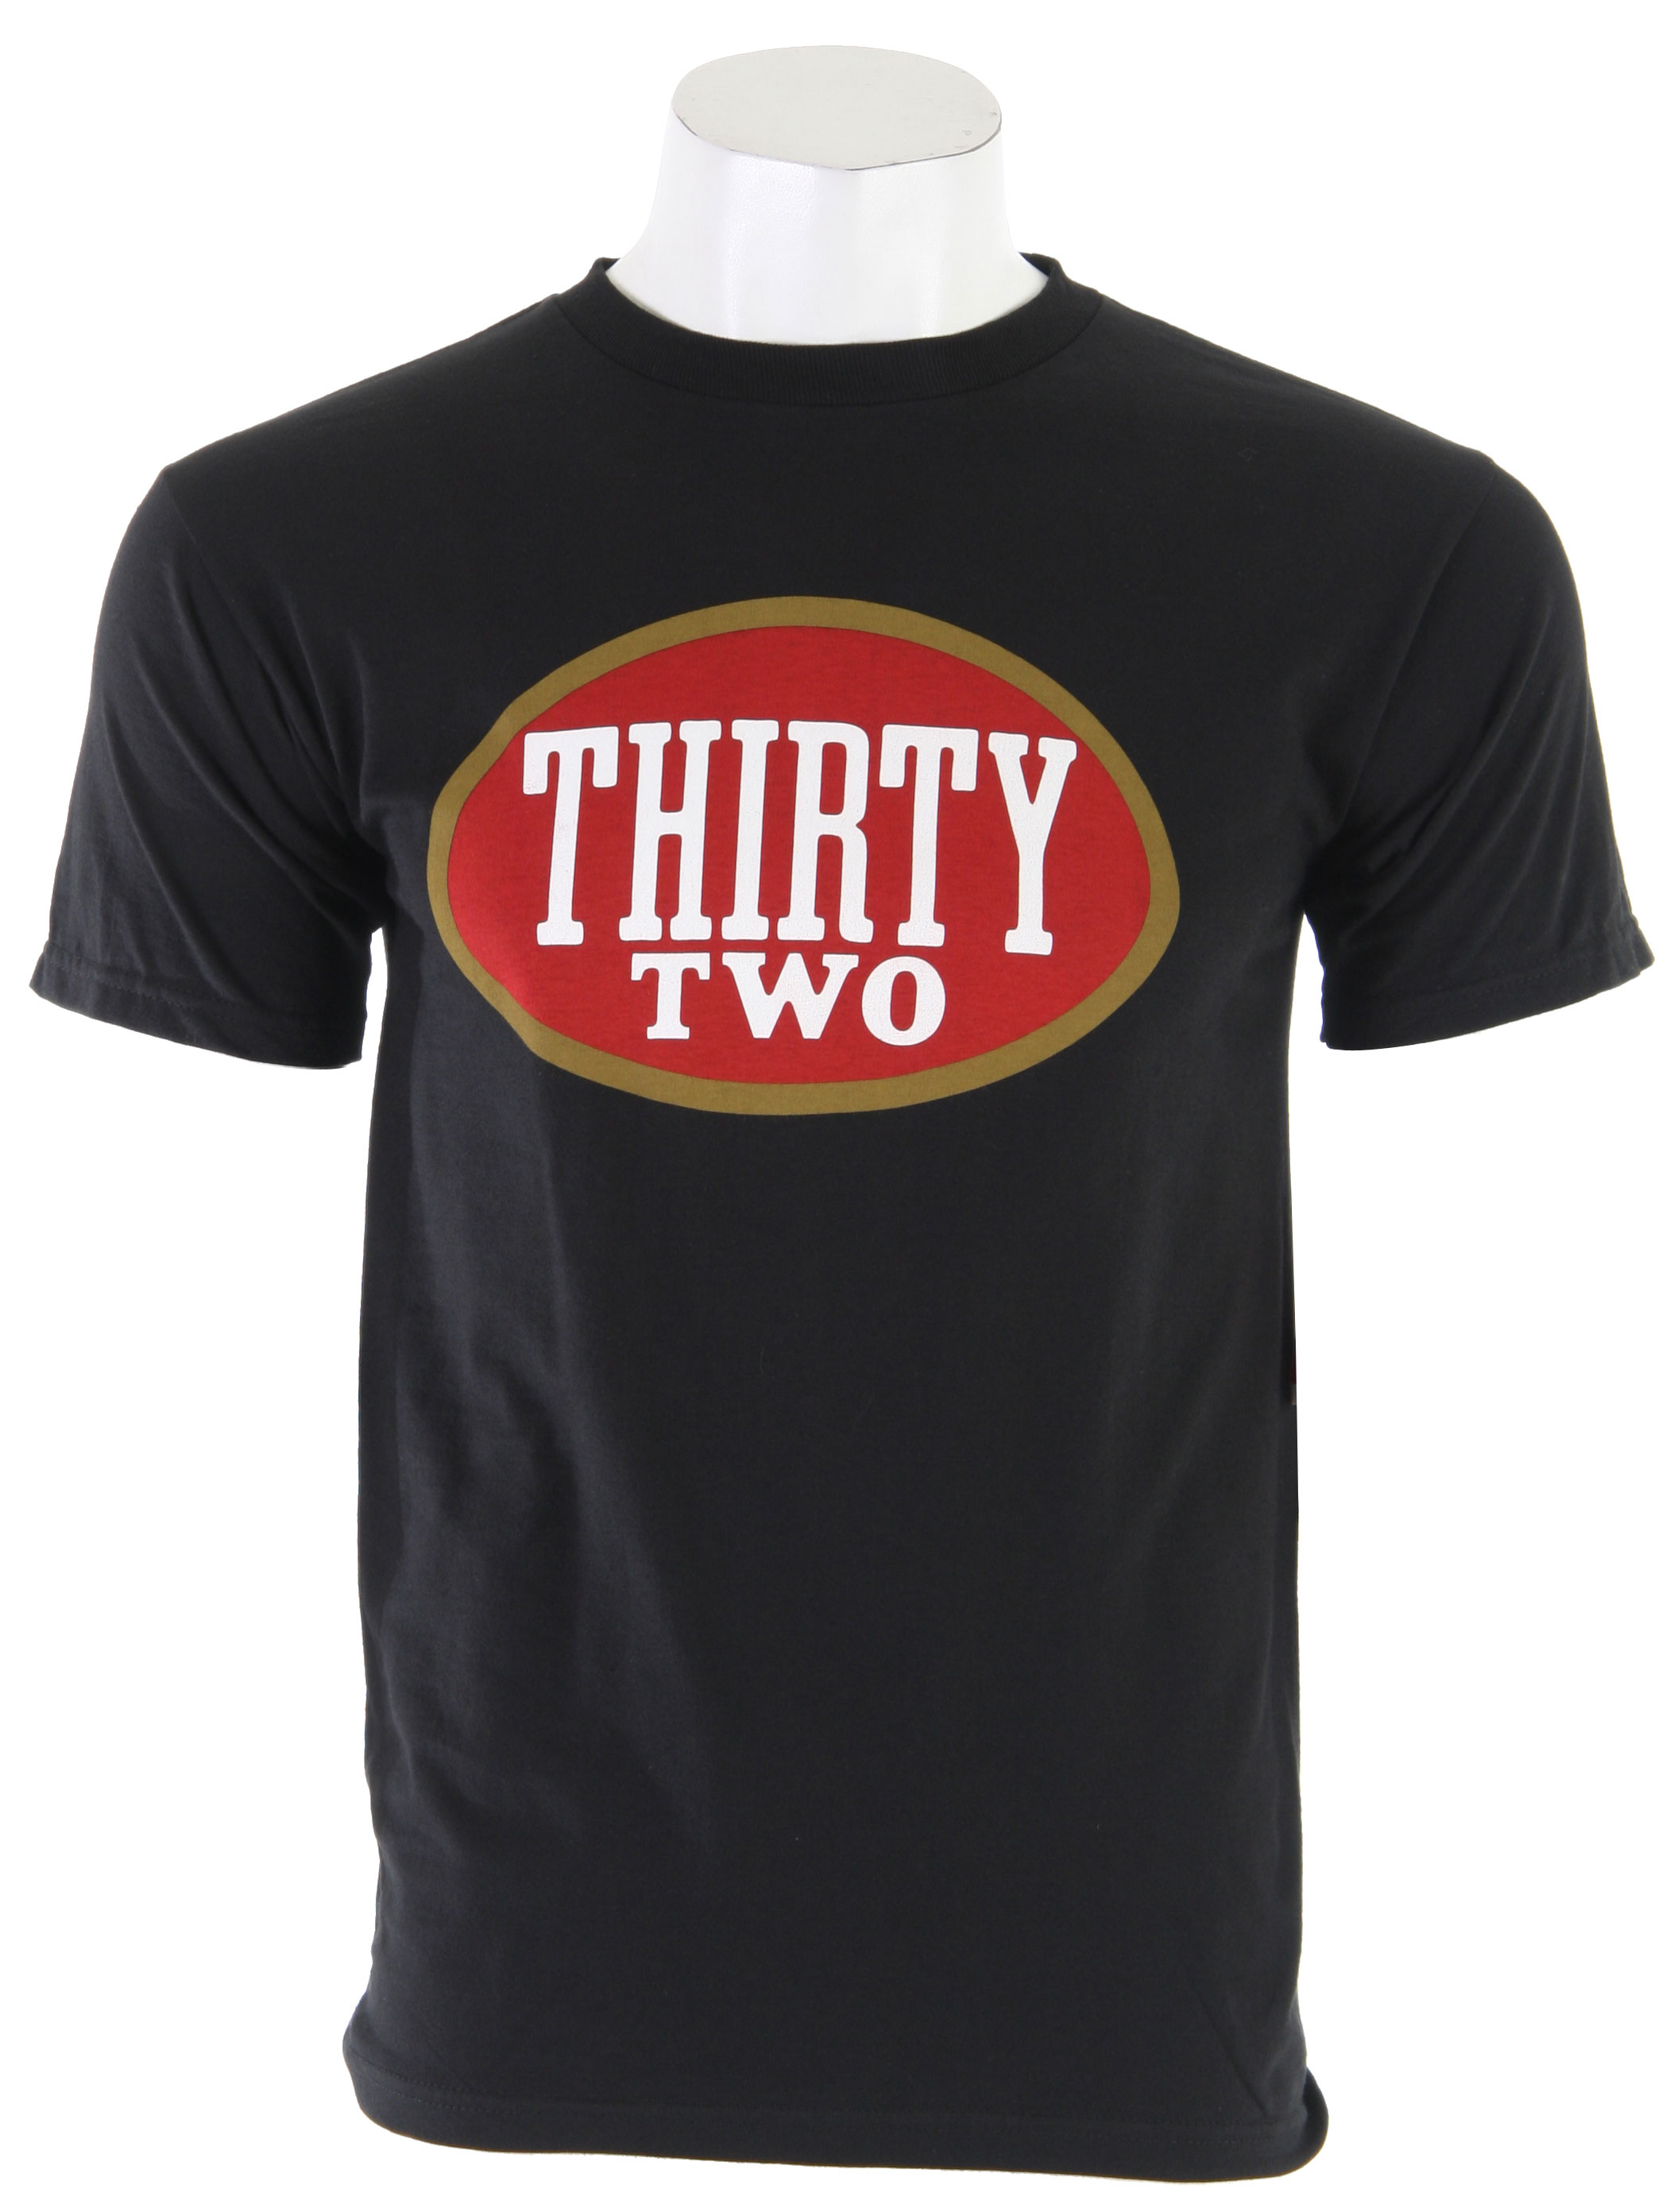 So many times we leave the house in a t-shirt that shouldn't even be in our closets. It's time to look presentable by wearing the Thirty Two Bodega T-Shirt. This well made standard fitting shirt will sure make you look even better. Your skin will thank you when you put on this 100% cotton made short sleeve shirt. This means all cotton will keep you cooler in the summer and warmer on those chilly days. And wearing a number 32 is also great for folks to wear in their 40's.Key Features of the Thirty Two Bodega T-Shirt: Standard fit 100% cotton short sleeve shirt. - $19.95